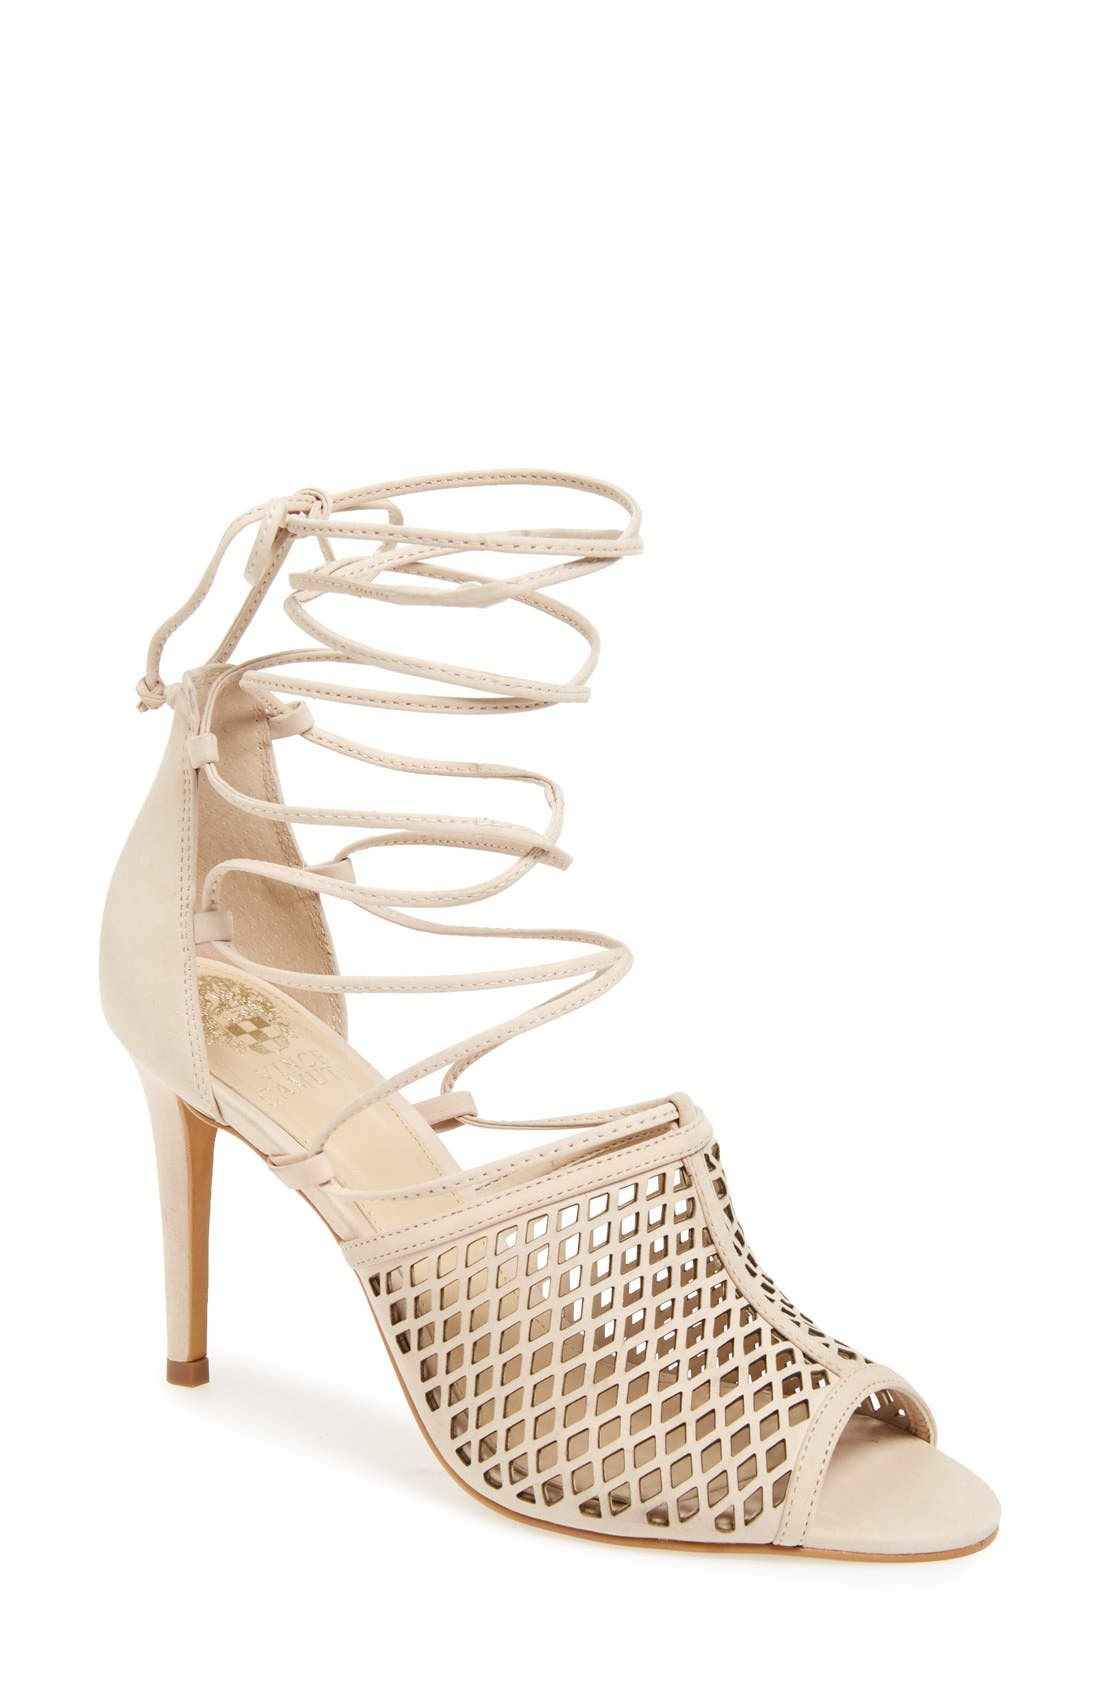 Main Image - Vince Camuto 'Vasha' Lace-Up Sandal (Women) (Nordstrom Exclusive)